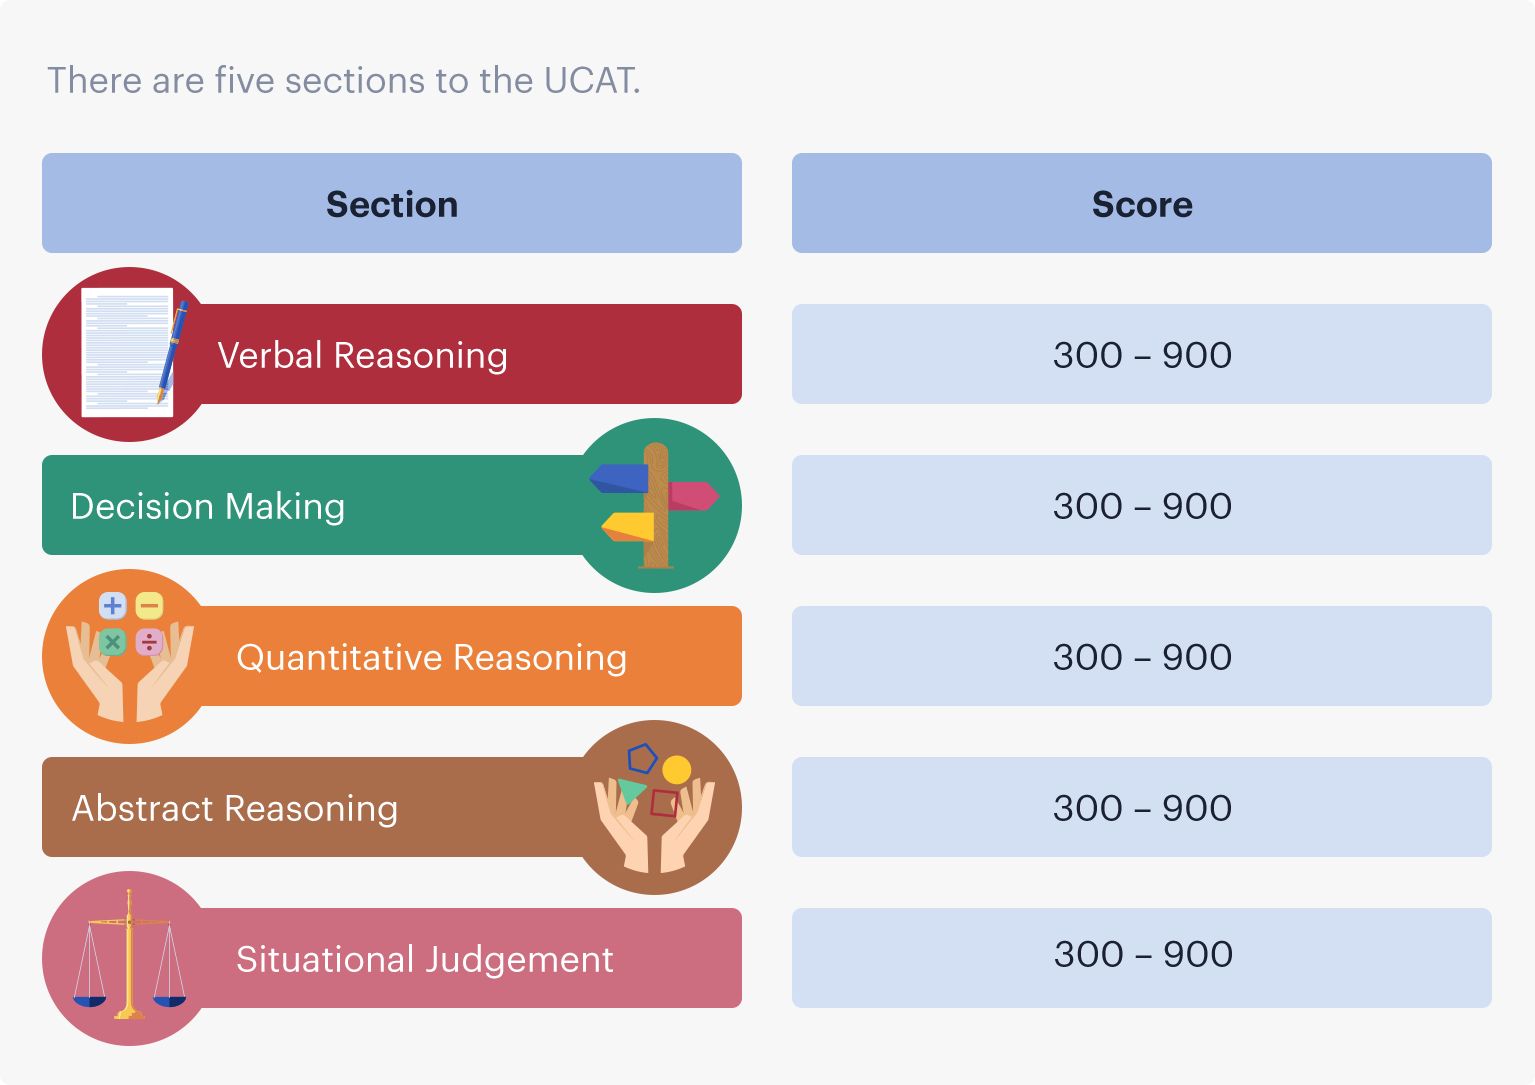 Scaled scores range between 300 and 900 for each UCAT ANZ section